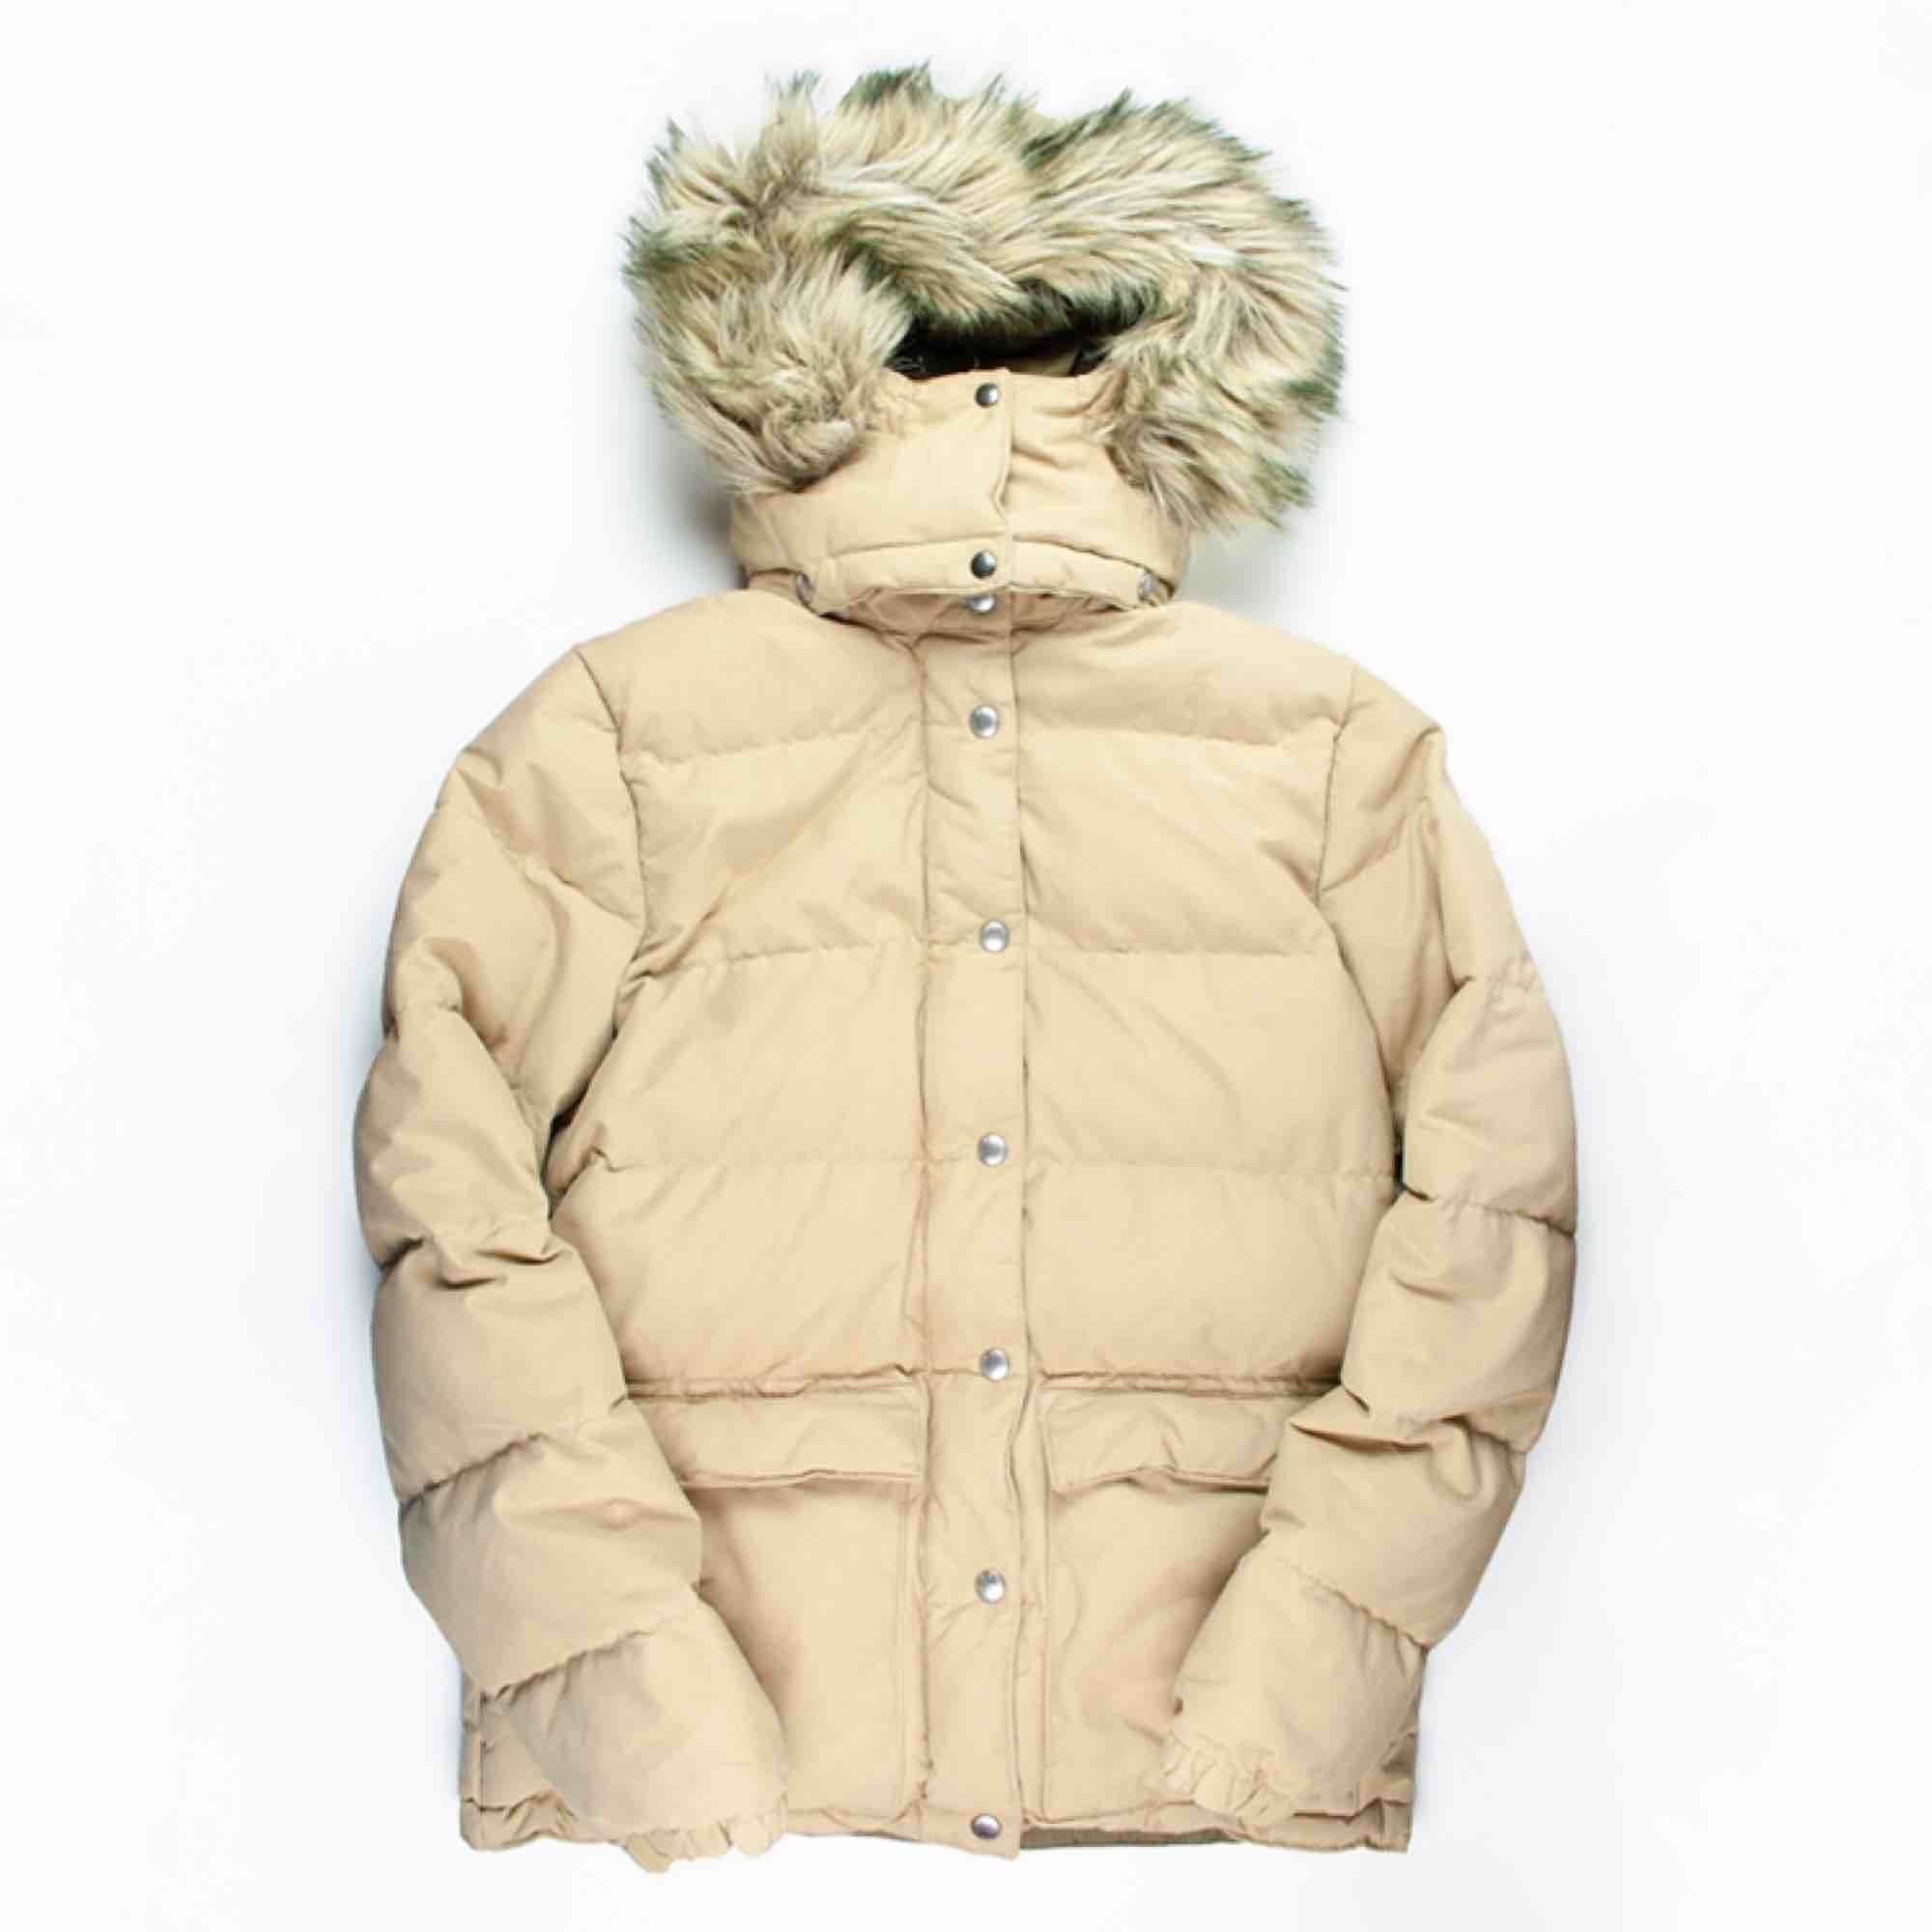 Retro Ralph Lauren Denim & Supply down puffer jacket in beige SIZE Label: S/P, fits best XS-S Model: 161/S Measurements (flat): length: 68 pit to pit: 51 sleeve inseam: 48 Free shipping! Read the full description at our website majorunit.com No returns . Jackor.